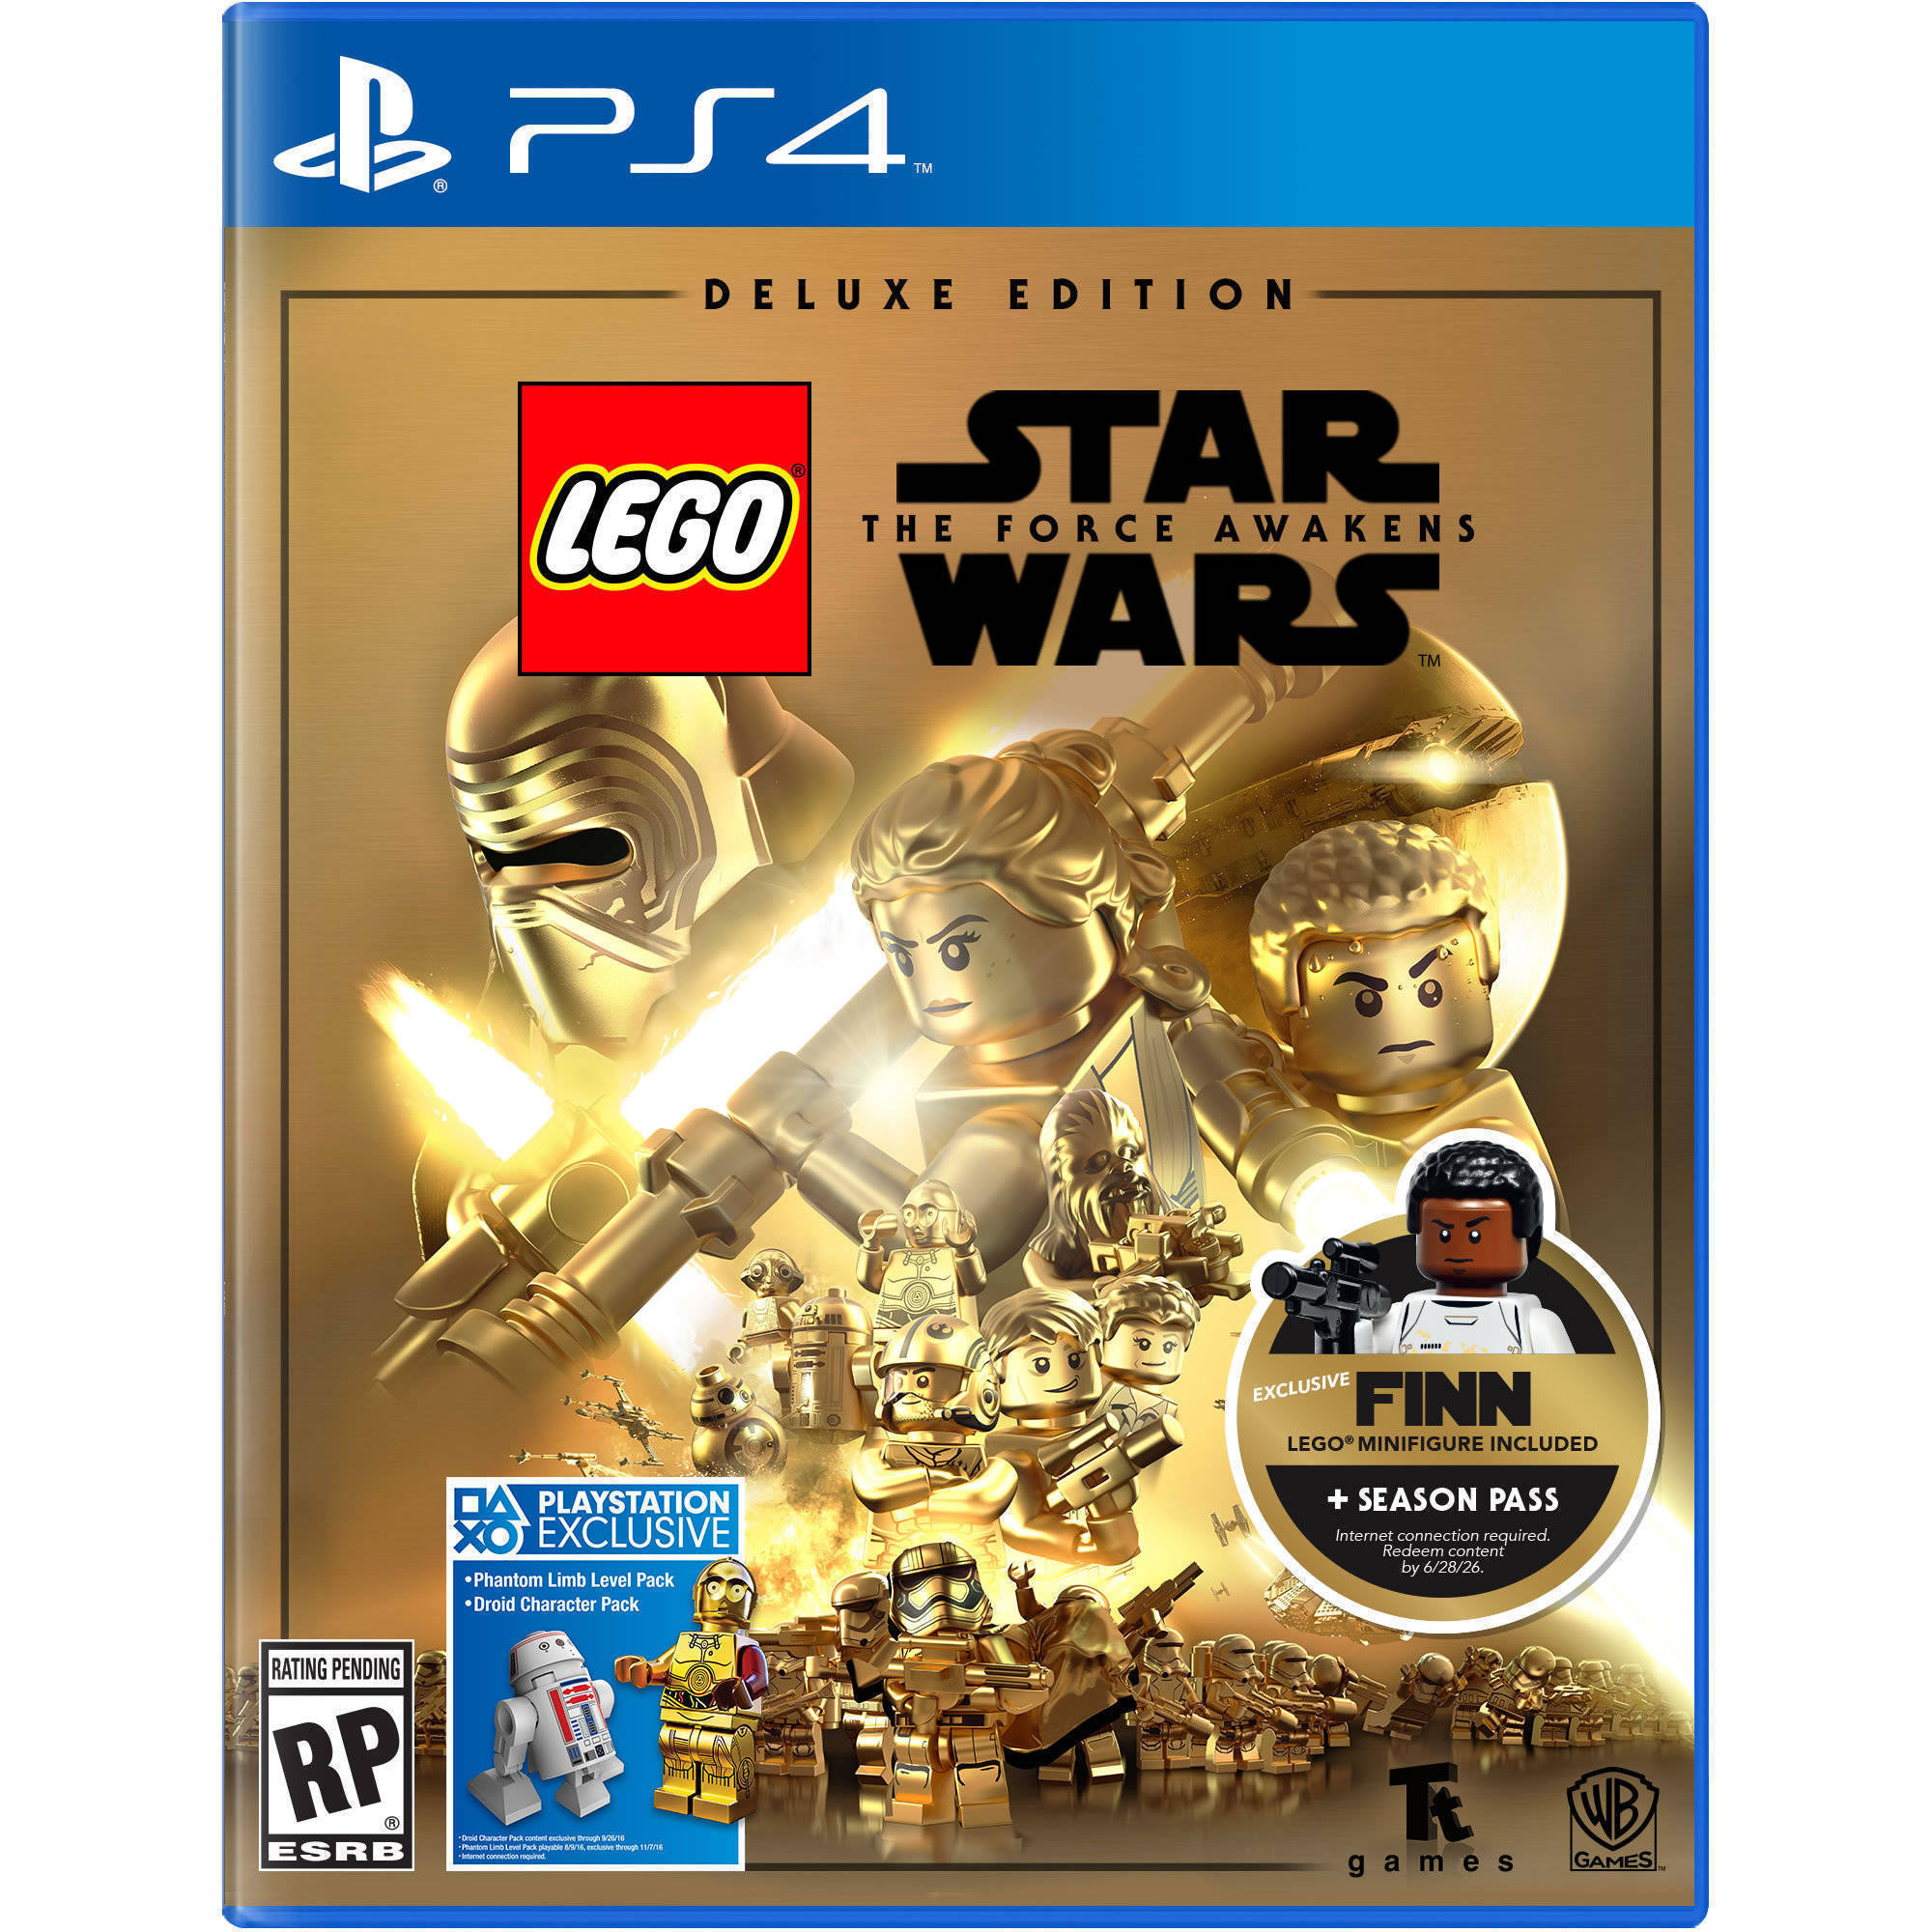 LEGO Star Wars Force Awakens Deluxe Edition - Walmart Exclusive (PS4)